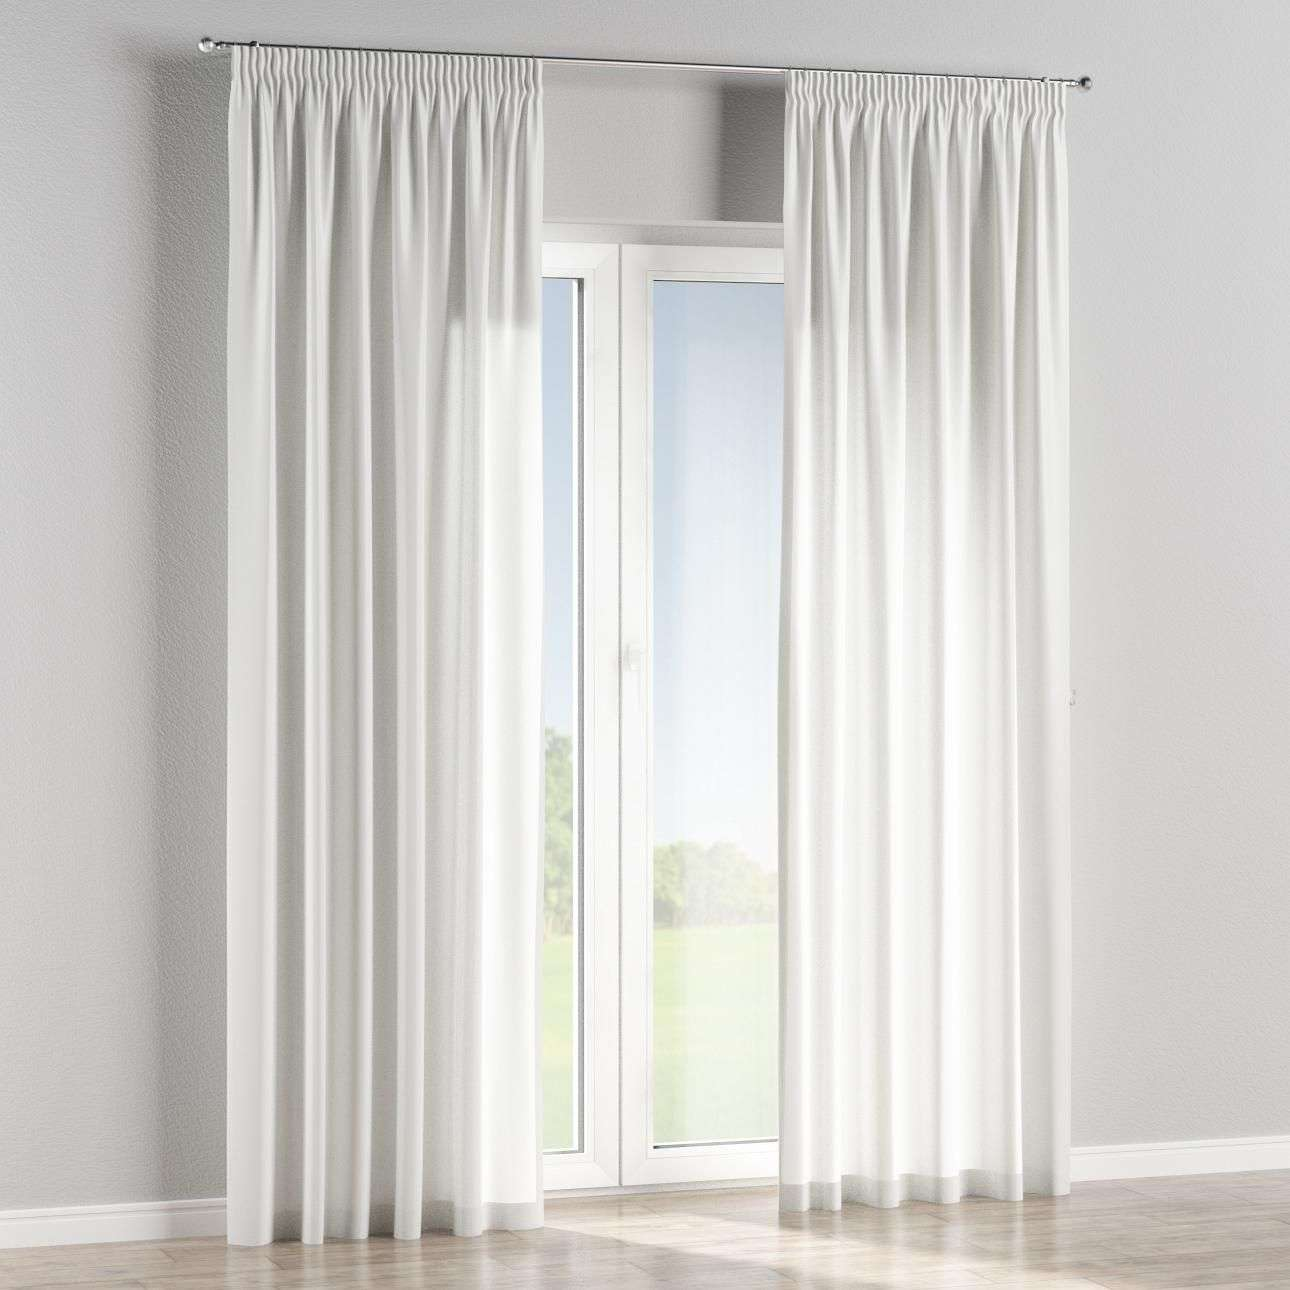 Pencil pleat lined curtains in collection Rustica, fabric: 138-16